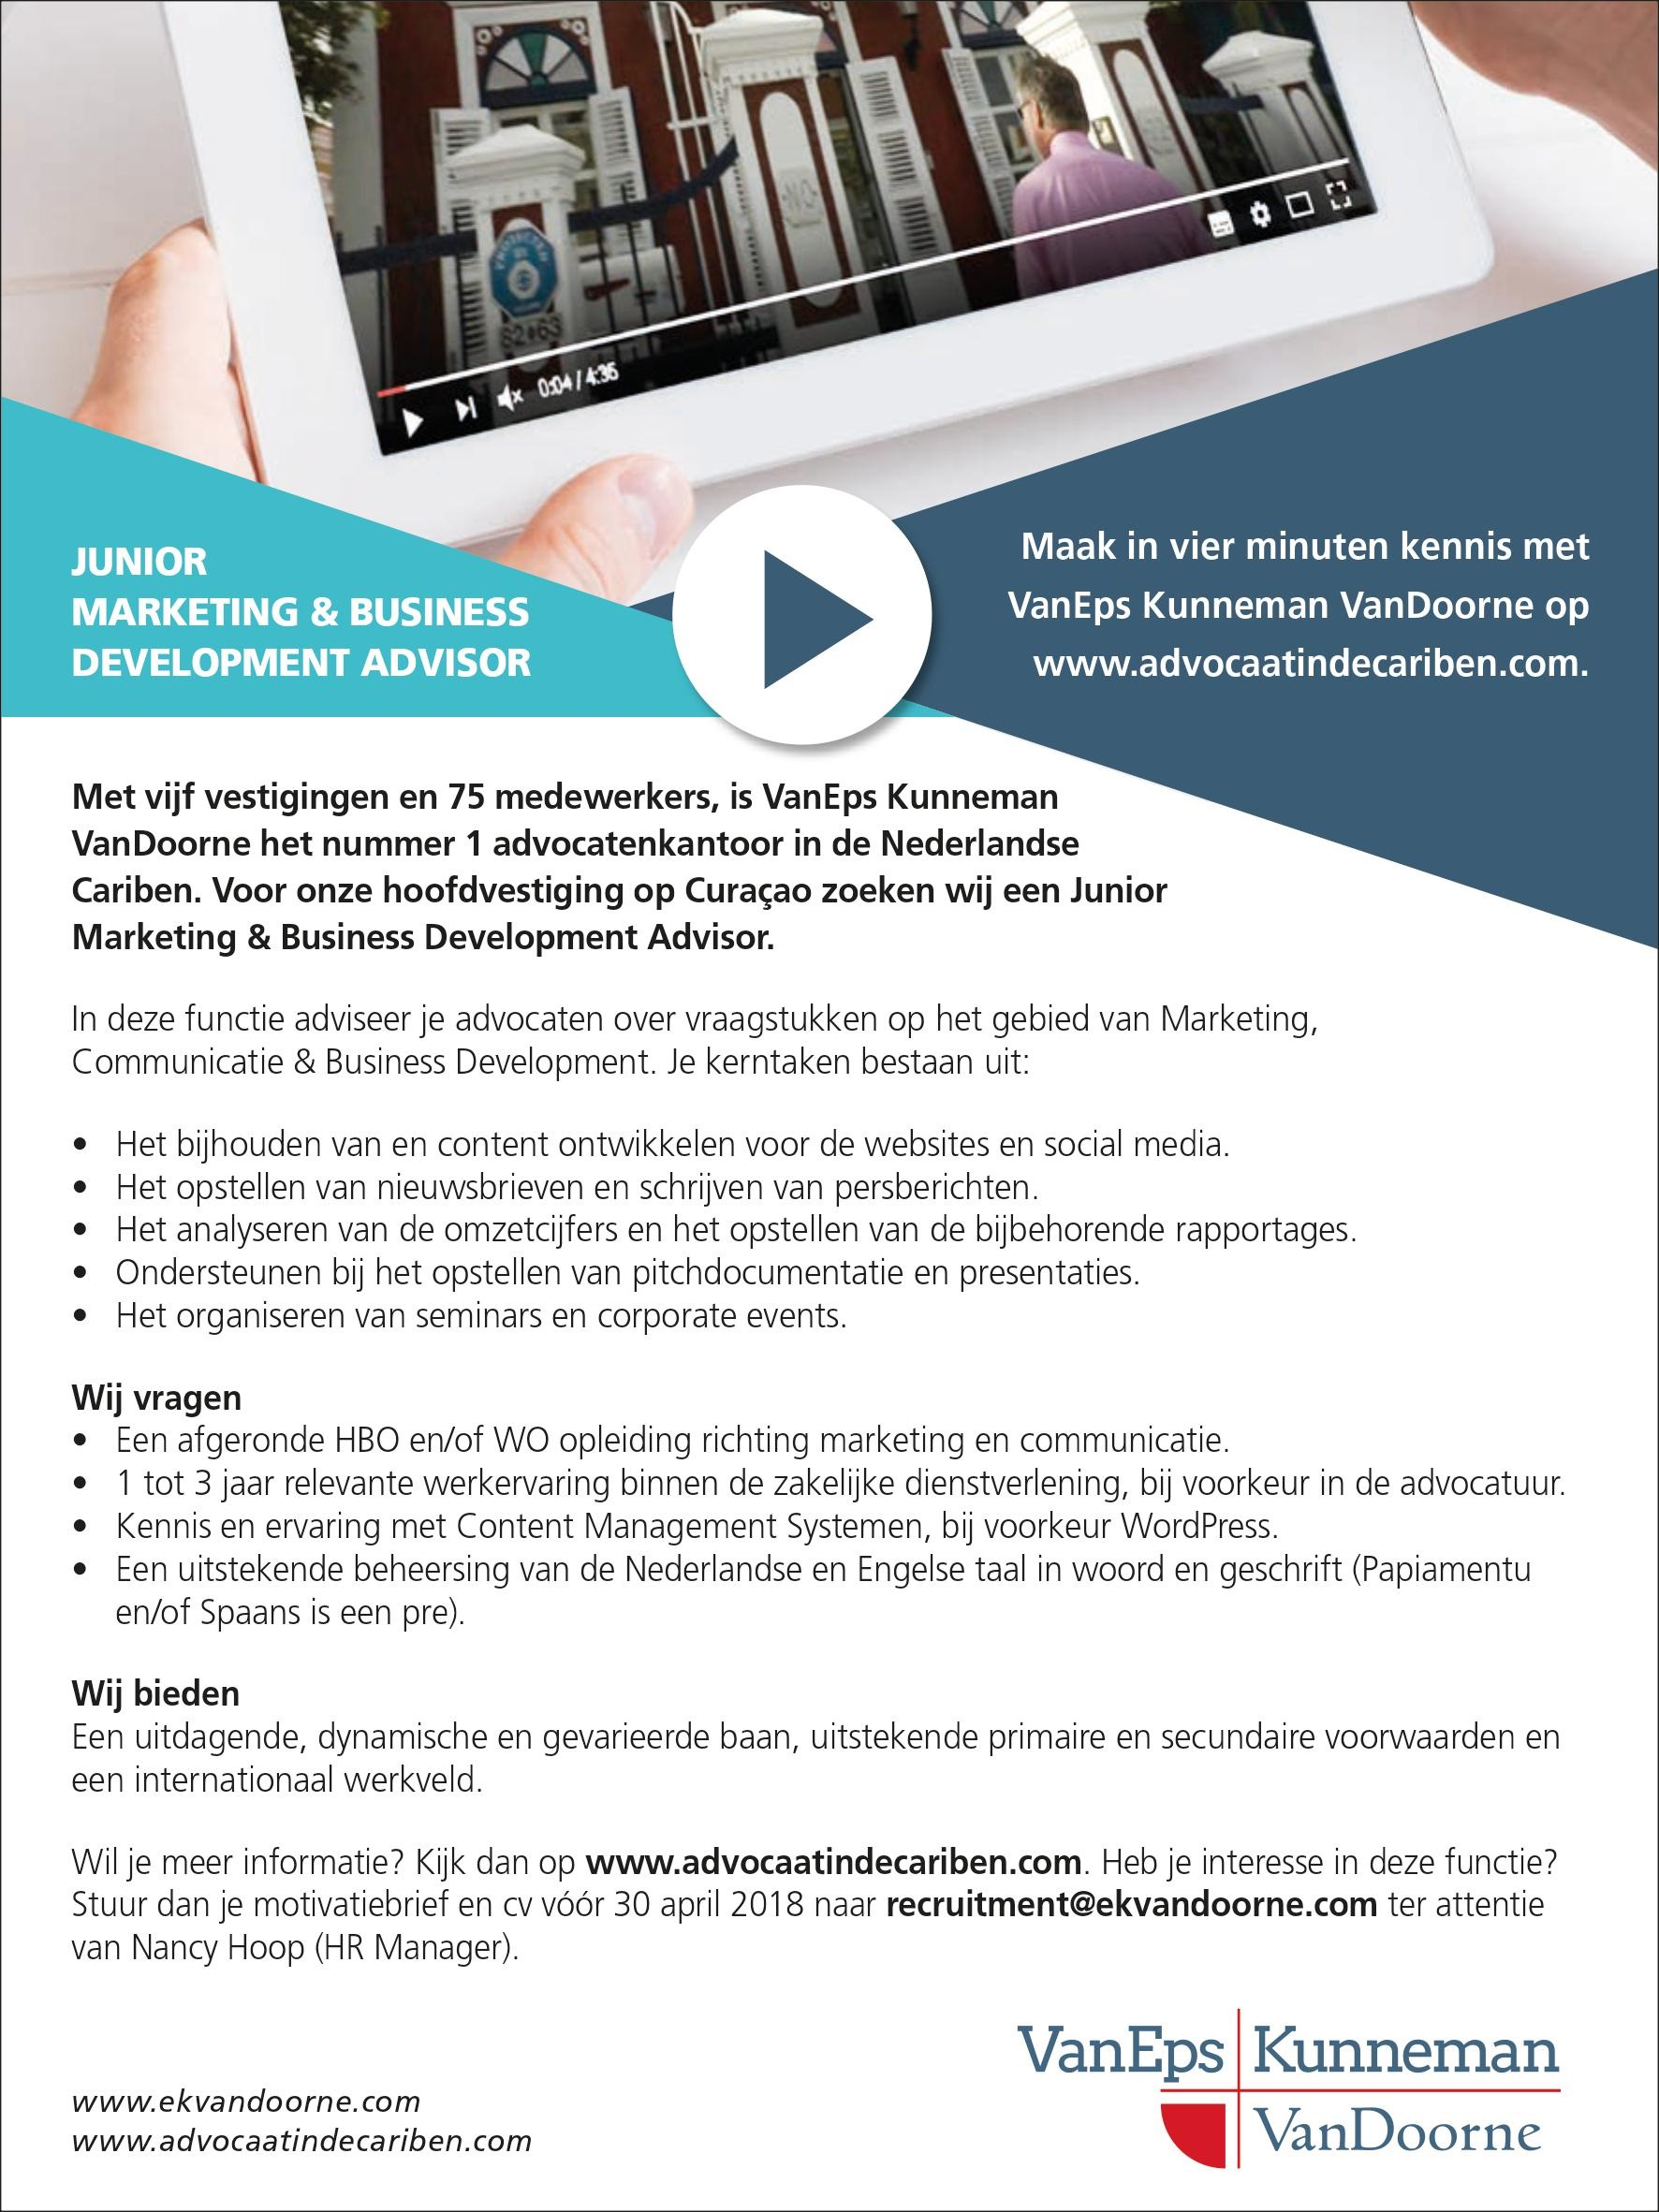 vacature_junior_marketing_business_development_advisor_van_eps_kunneman_vandoorne.jpg